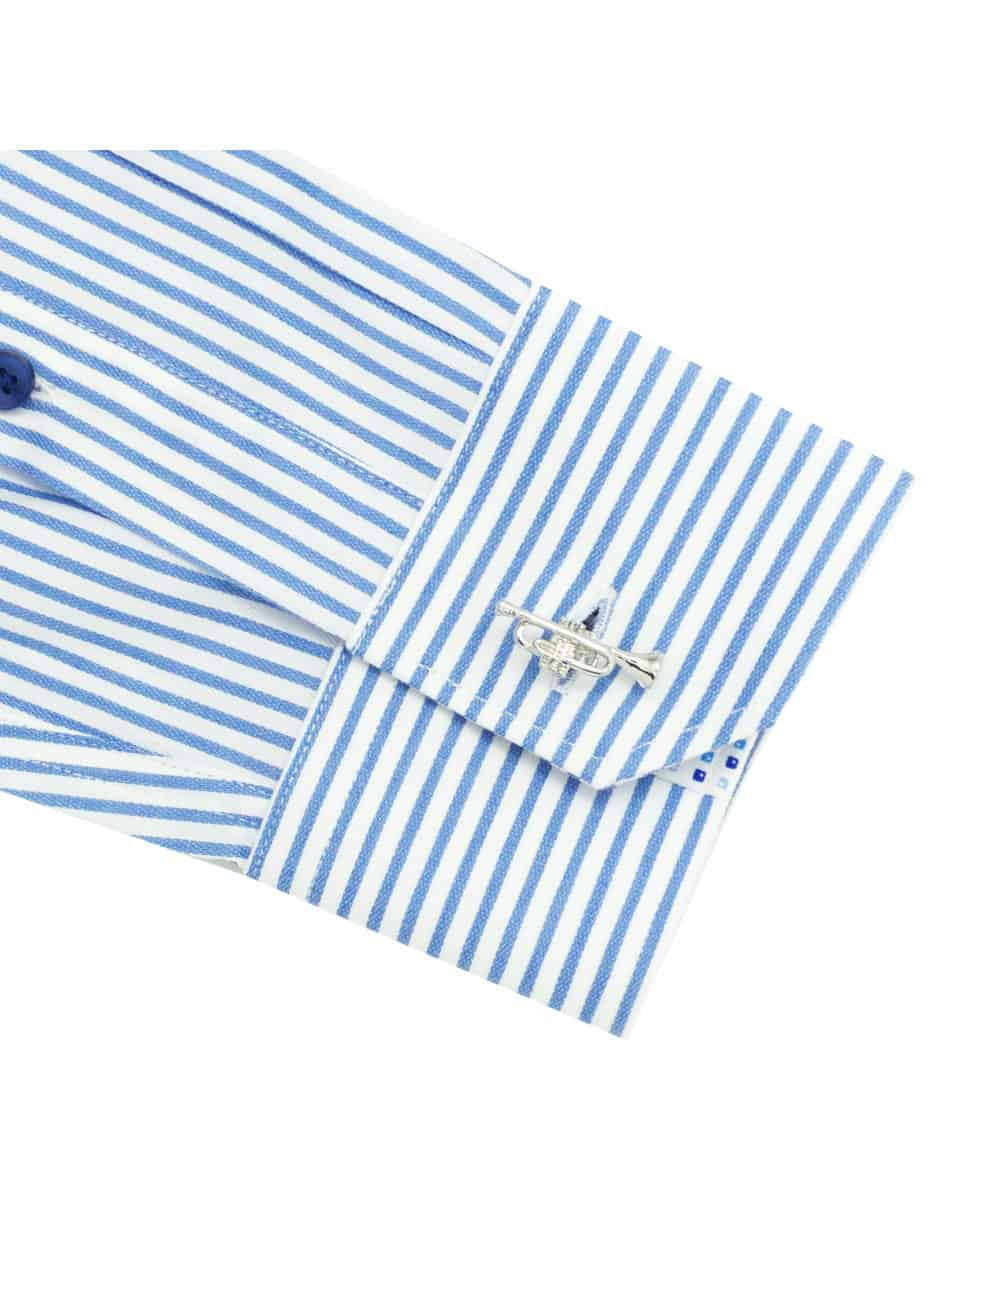 TF White with Blue Stripes Cotton Blend Spill Resistant Long Sleeve Single Cuff Shirt TF2F3.15